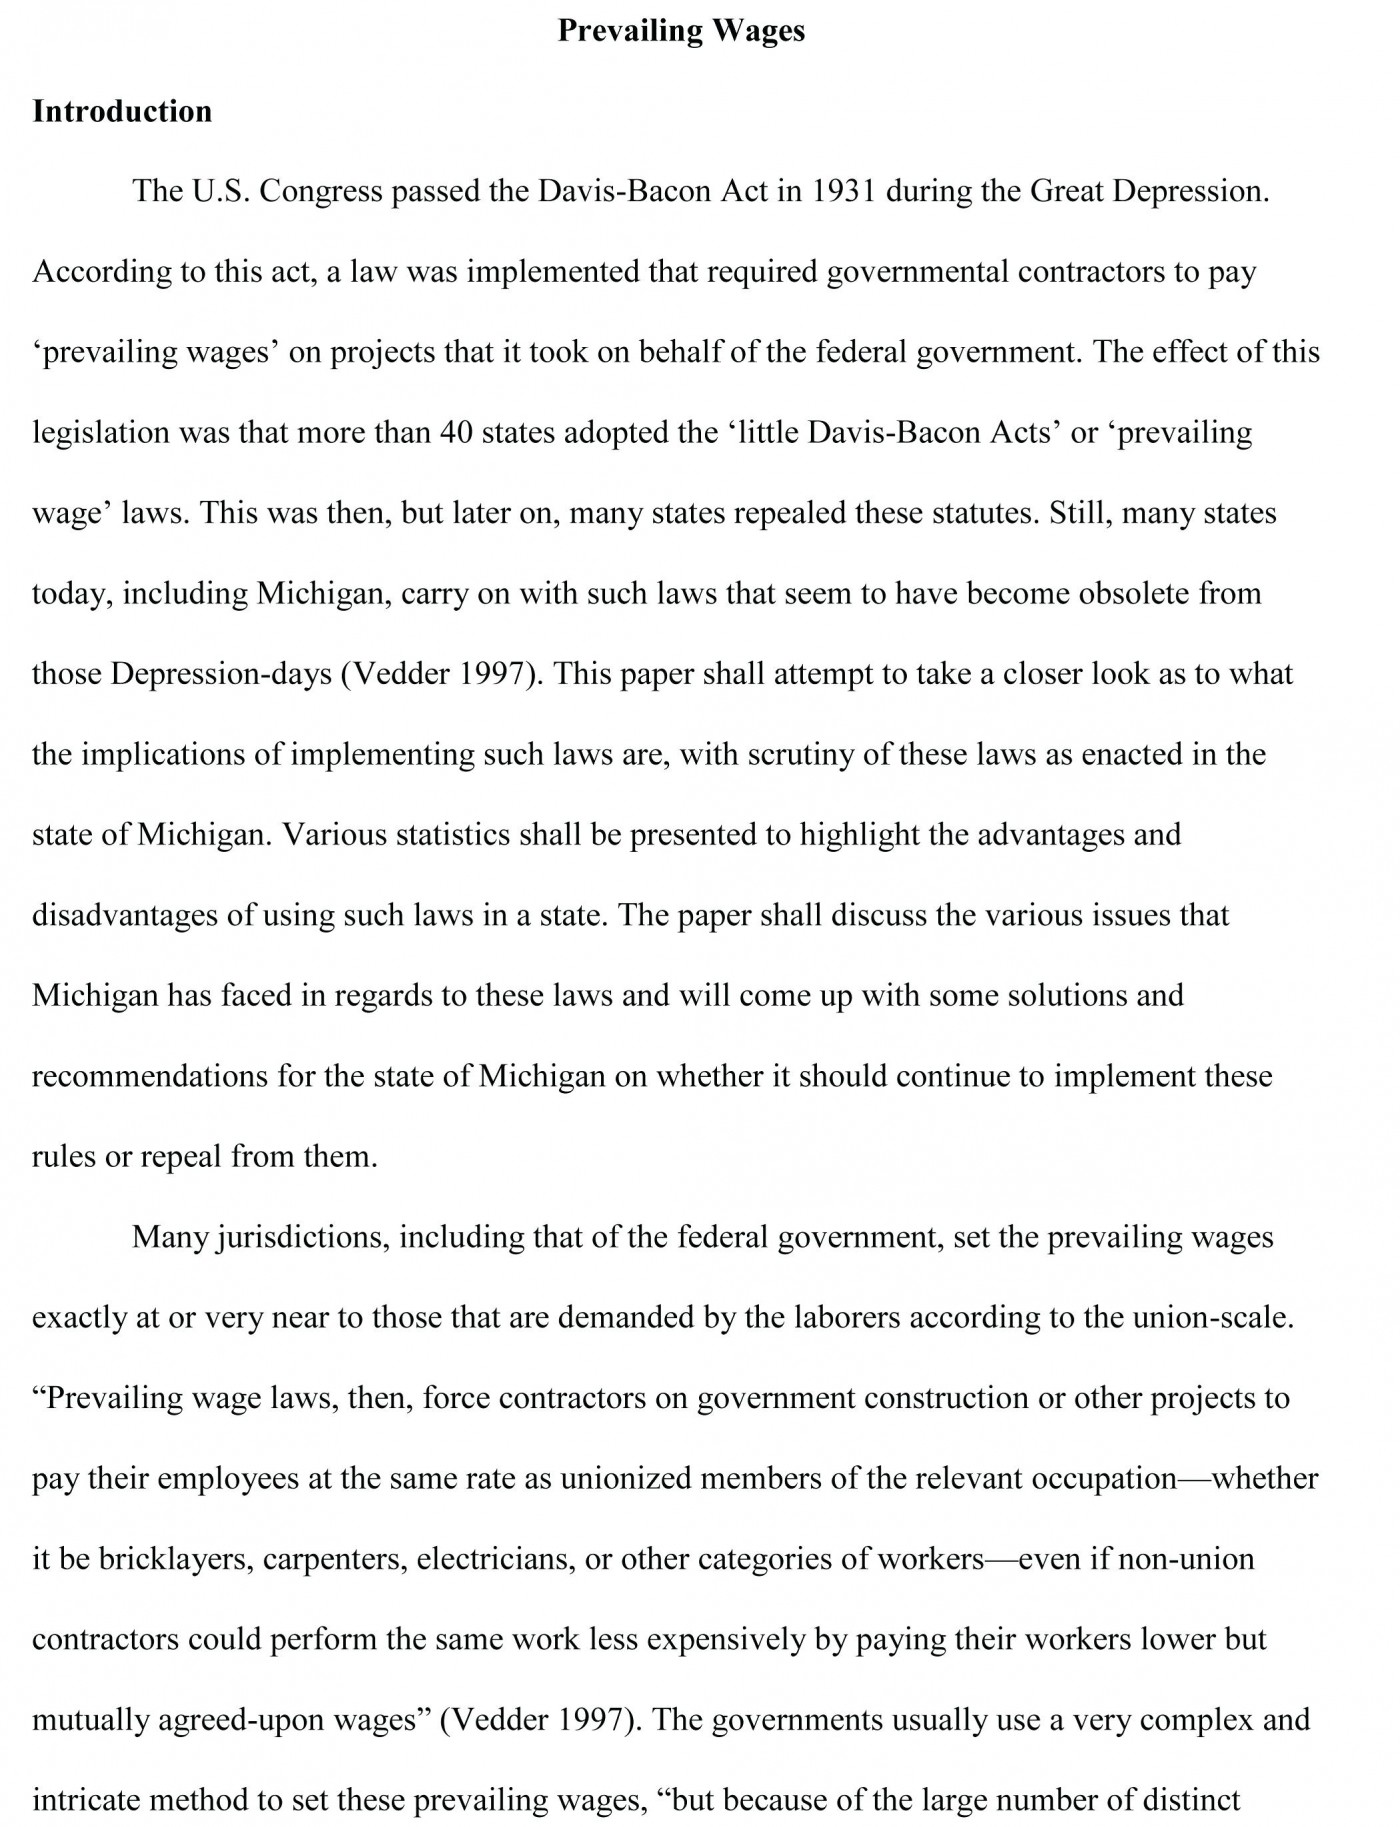 001 Essayxample Synthesisxamples Templtexmples Quickplumber Us Government And Politics Sttement Rgumenttive Sensational Synthesis Essay Outline Format Ap Lang 1400